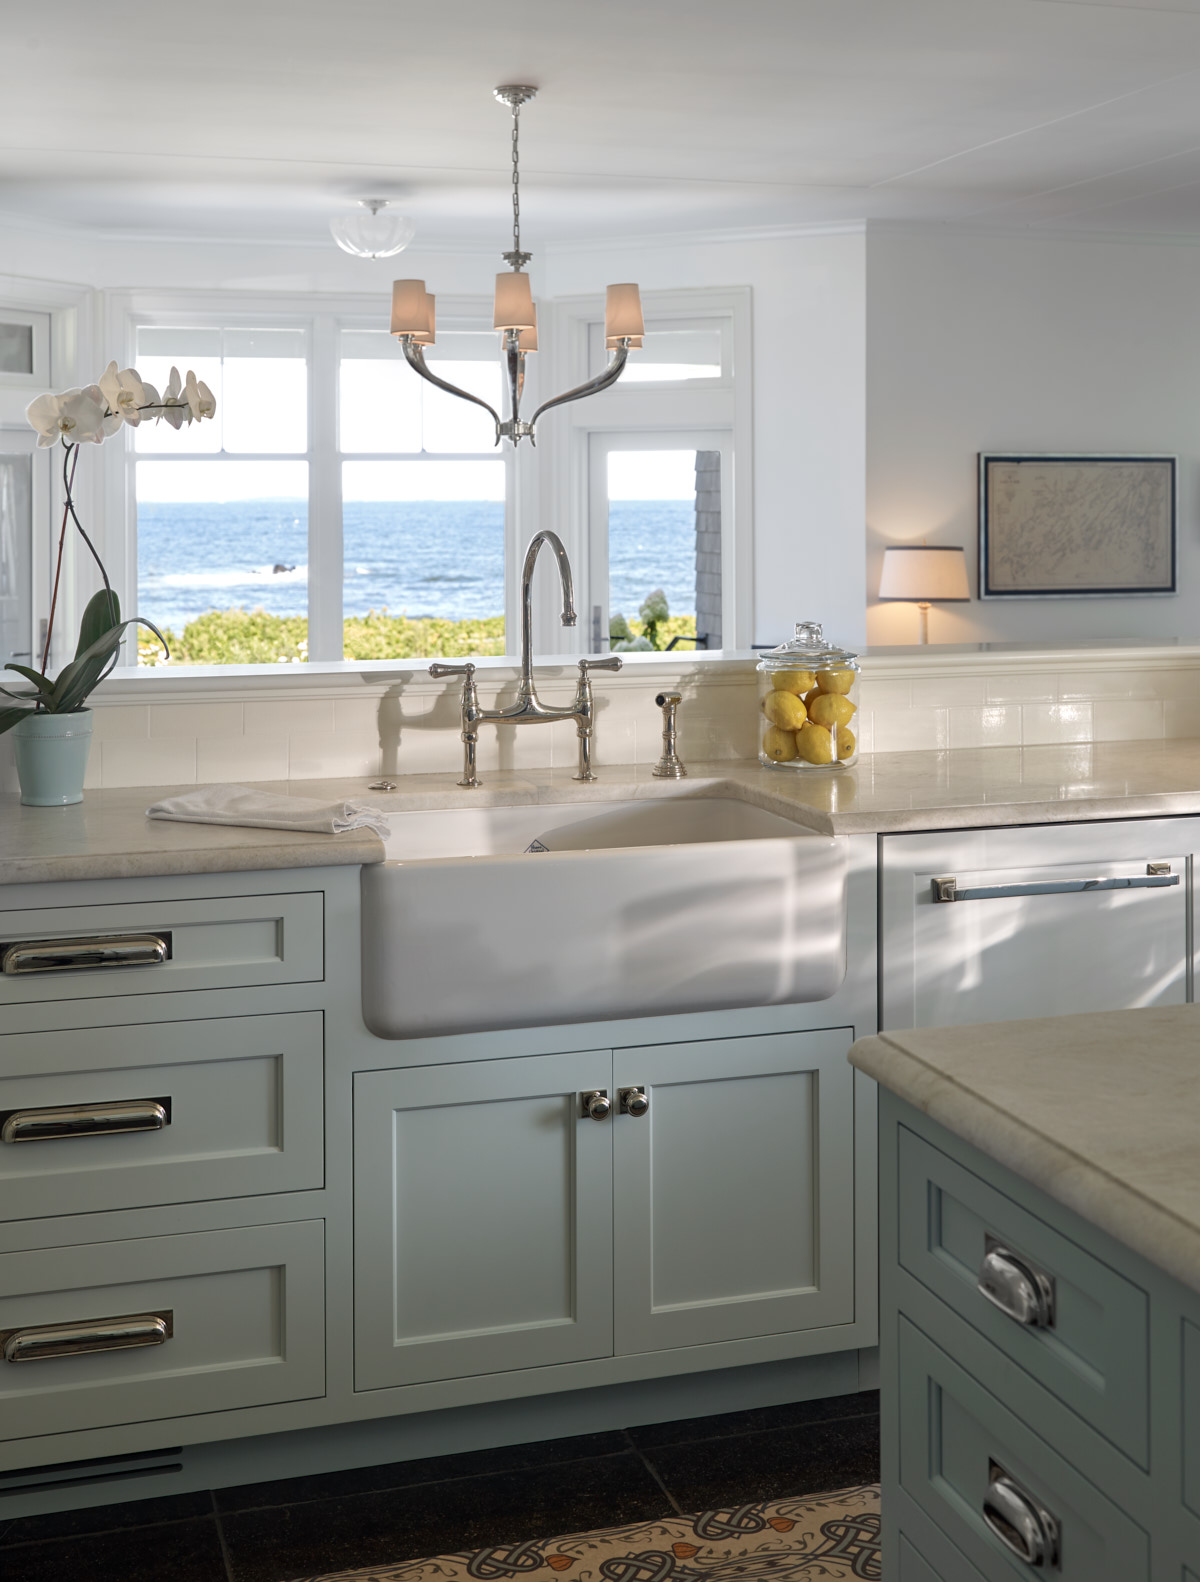 Bright kitchen with unique light fixture and silver accents.